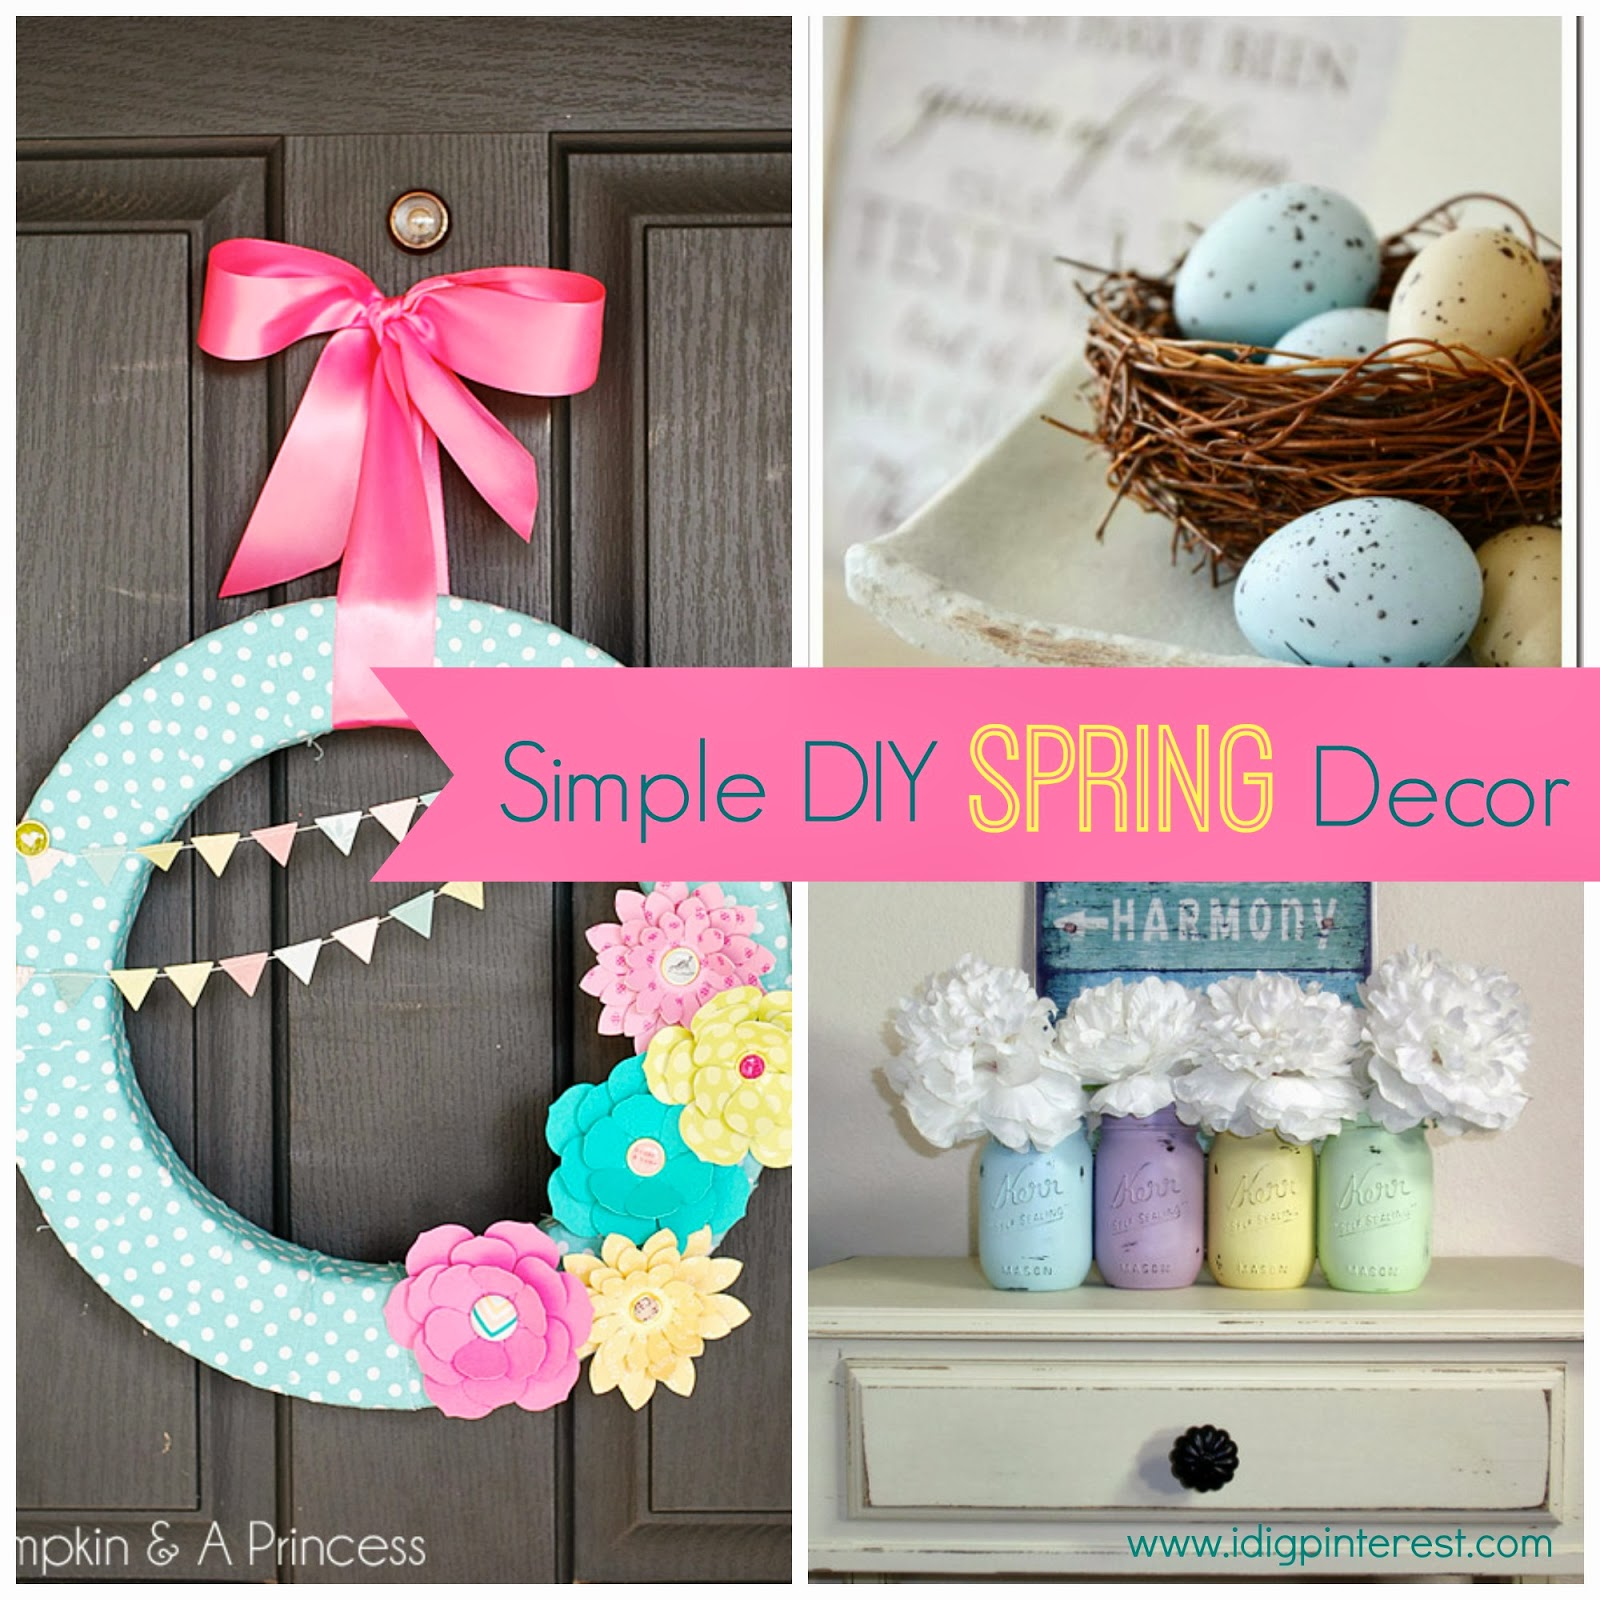 Simple DIY Spring Decor